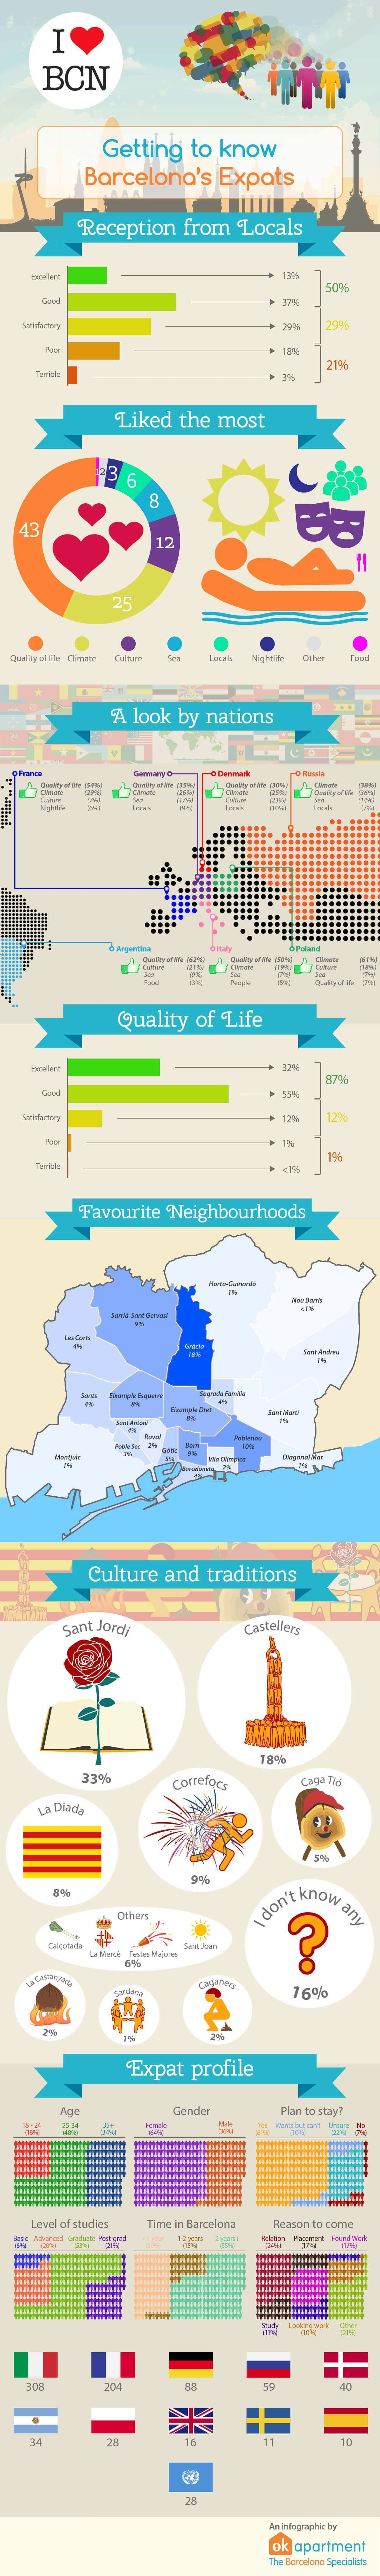 Infographic-EN-expats-likes-barcelona